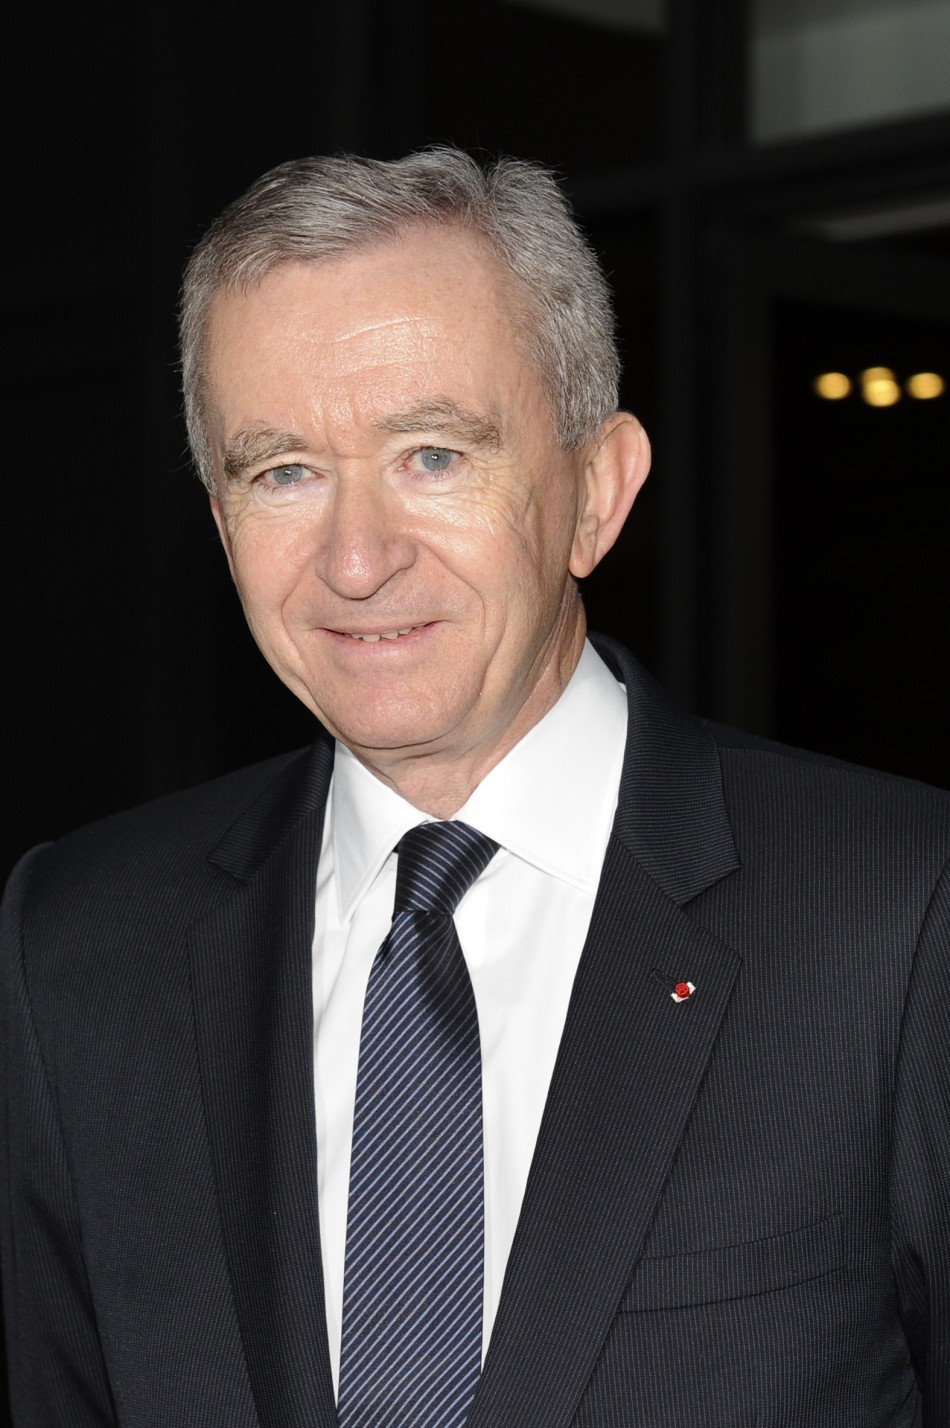 World 39 s richest people top 10 forbes billionaires of 2012 for Bernard arnaud fortune